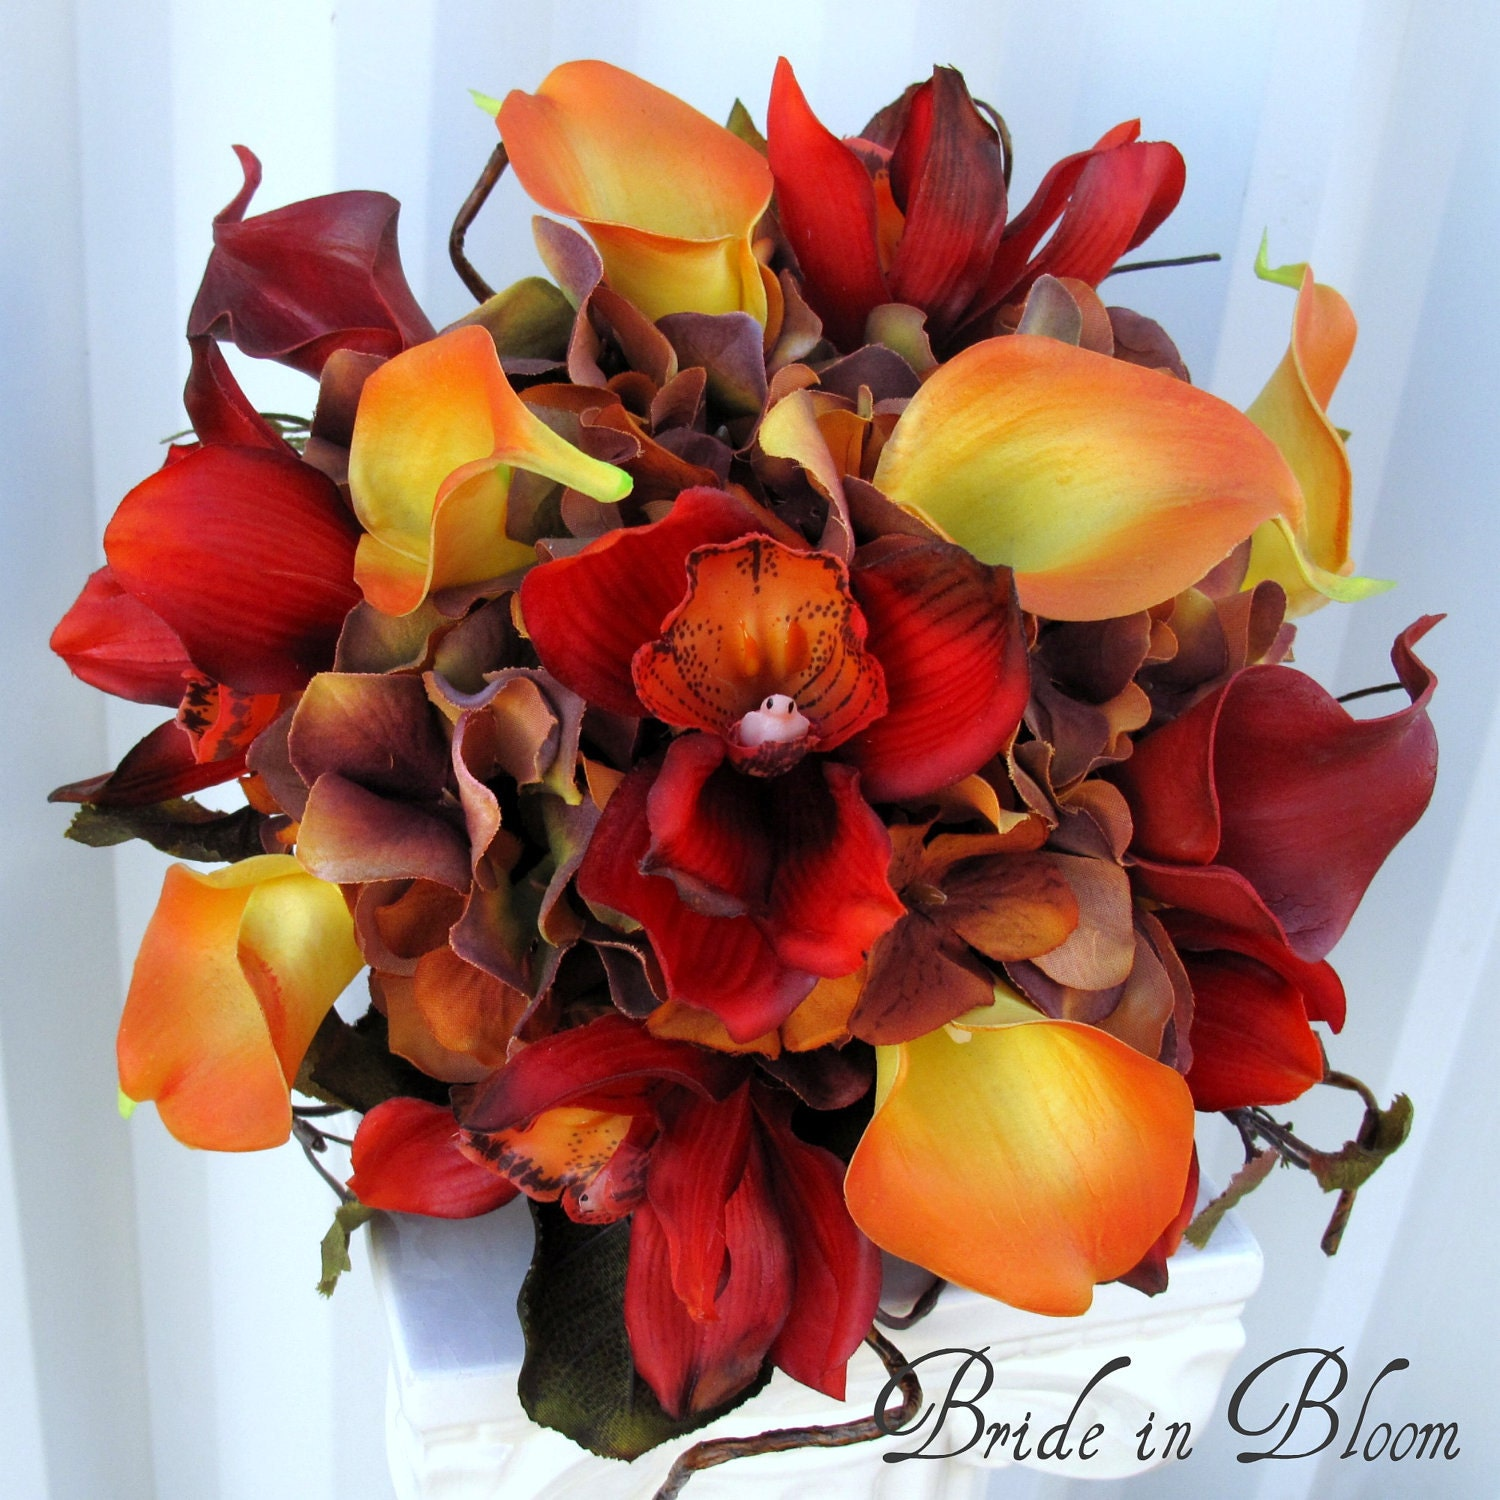 Autumn wedding bouquet Fall bridal bouquet Red & Orange